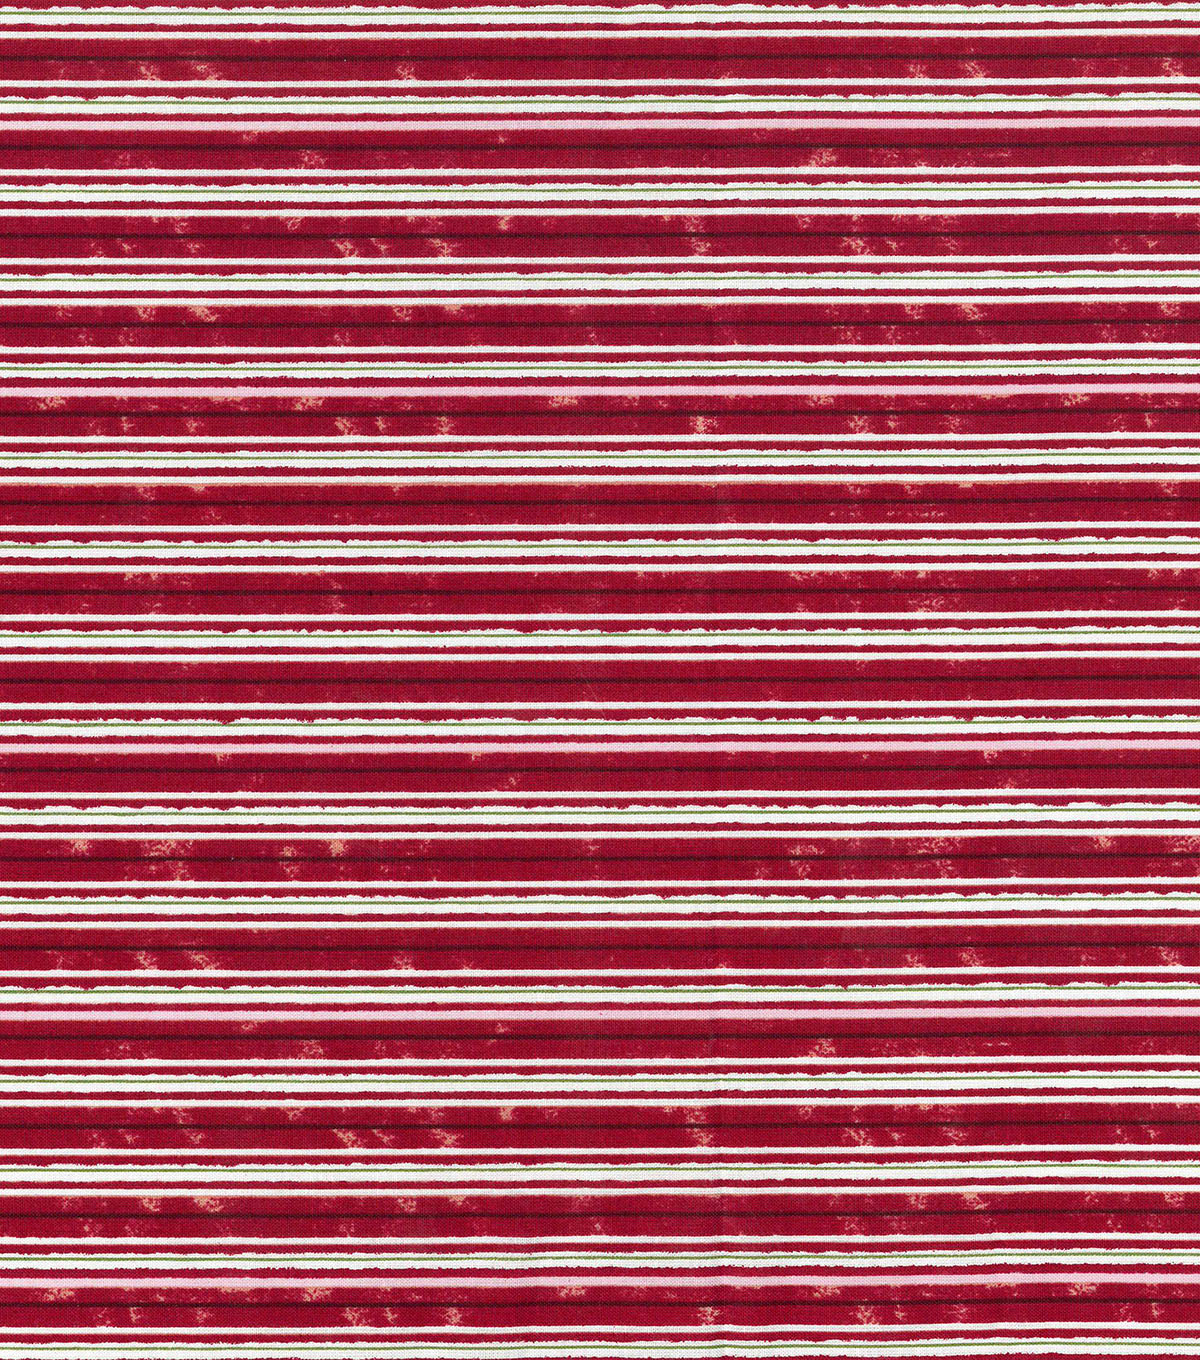 Keepsake Calico Holiday Cotton Fabric 43\u0022-Christmas Stripe